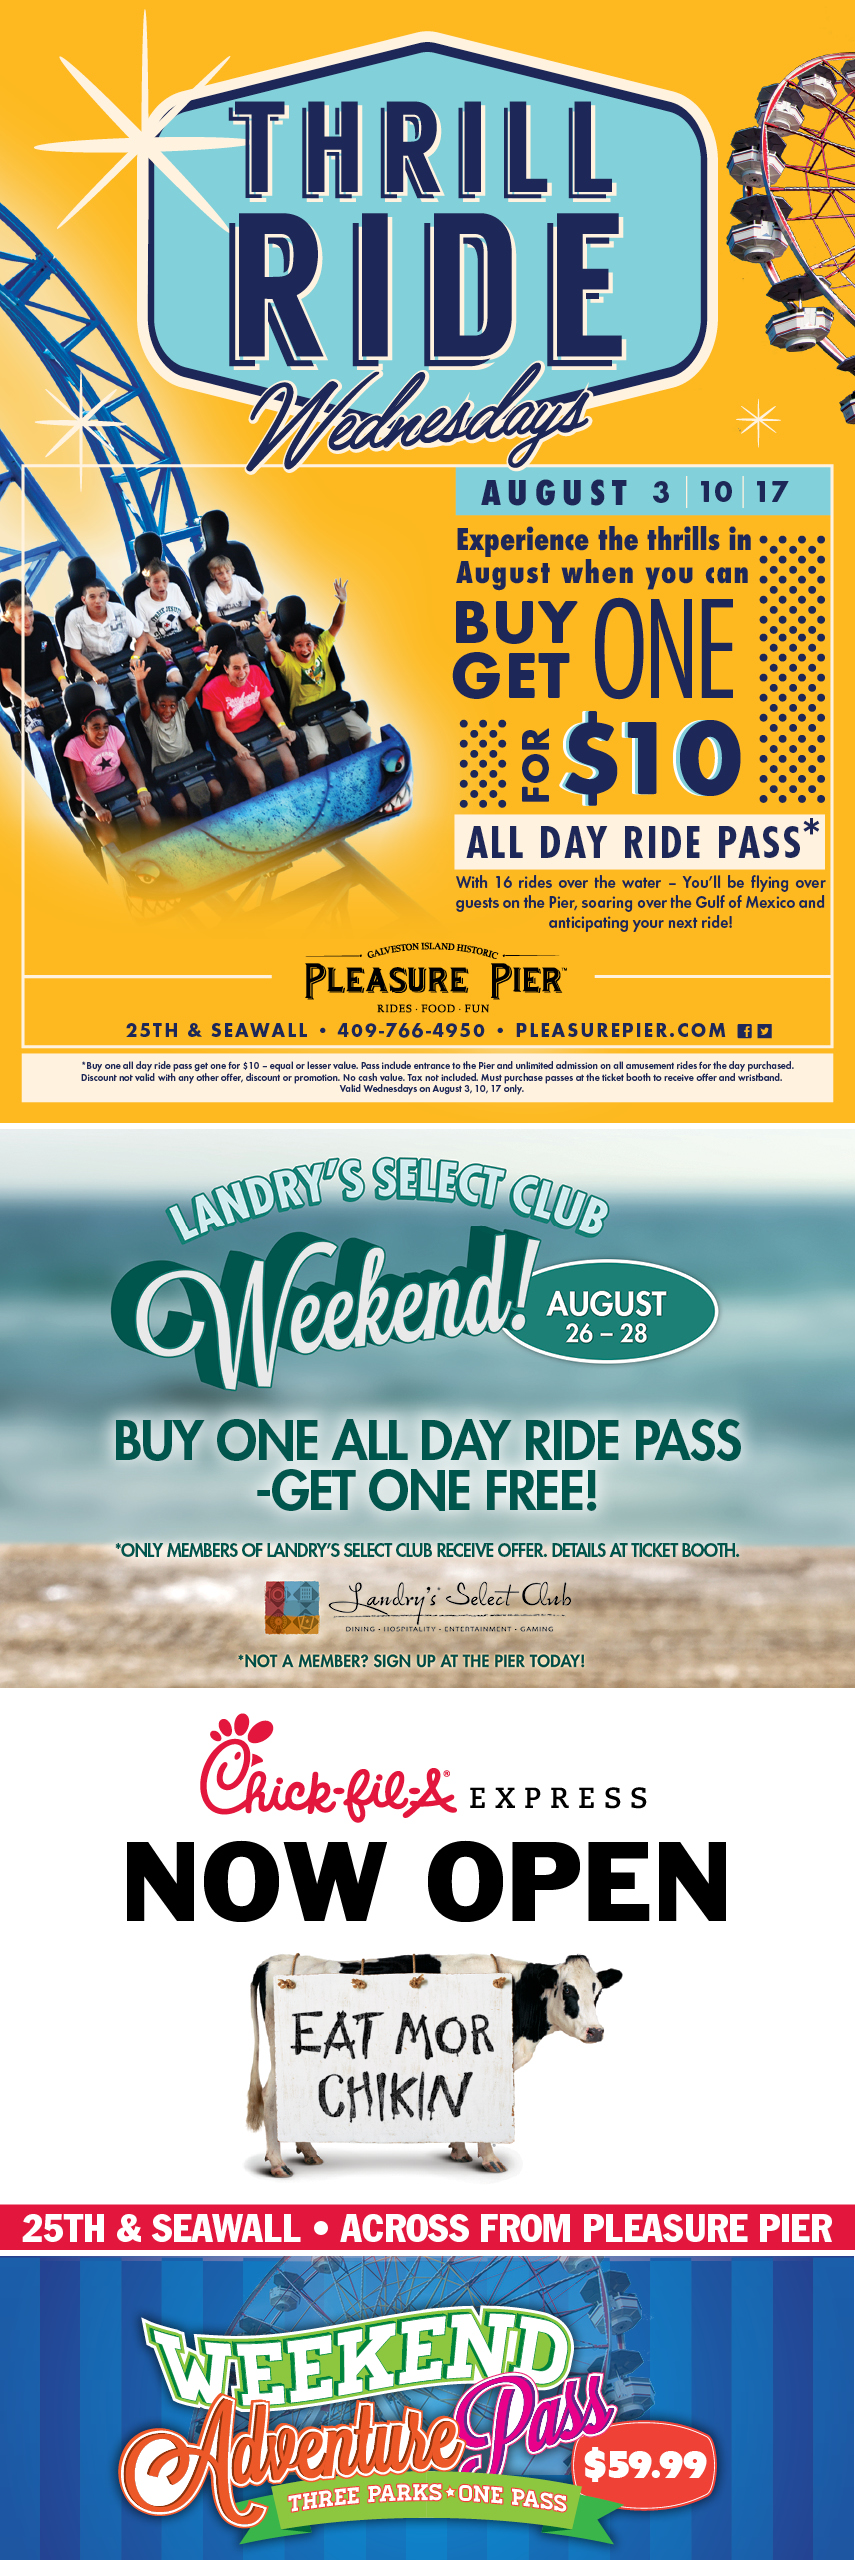 Upcoming events for Pleasure Pier.